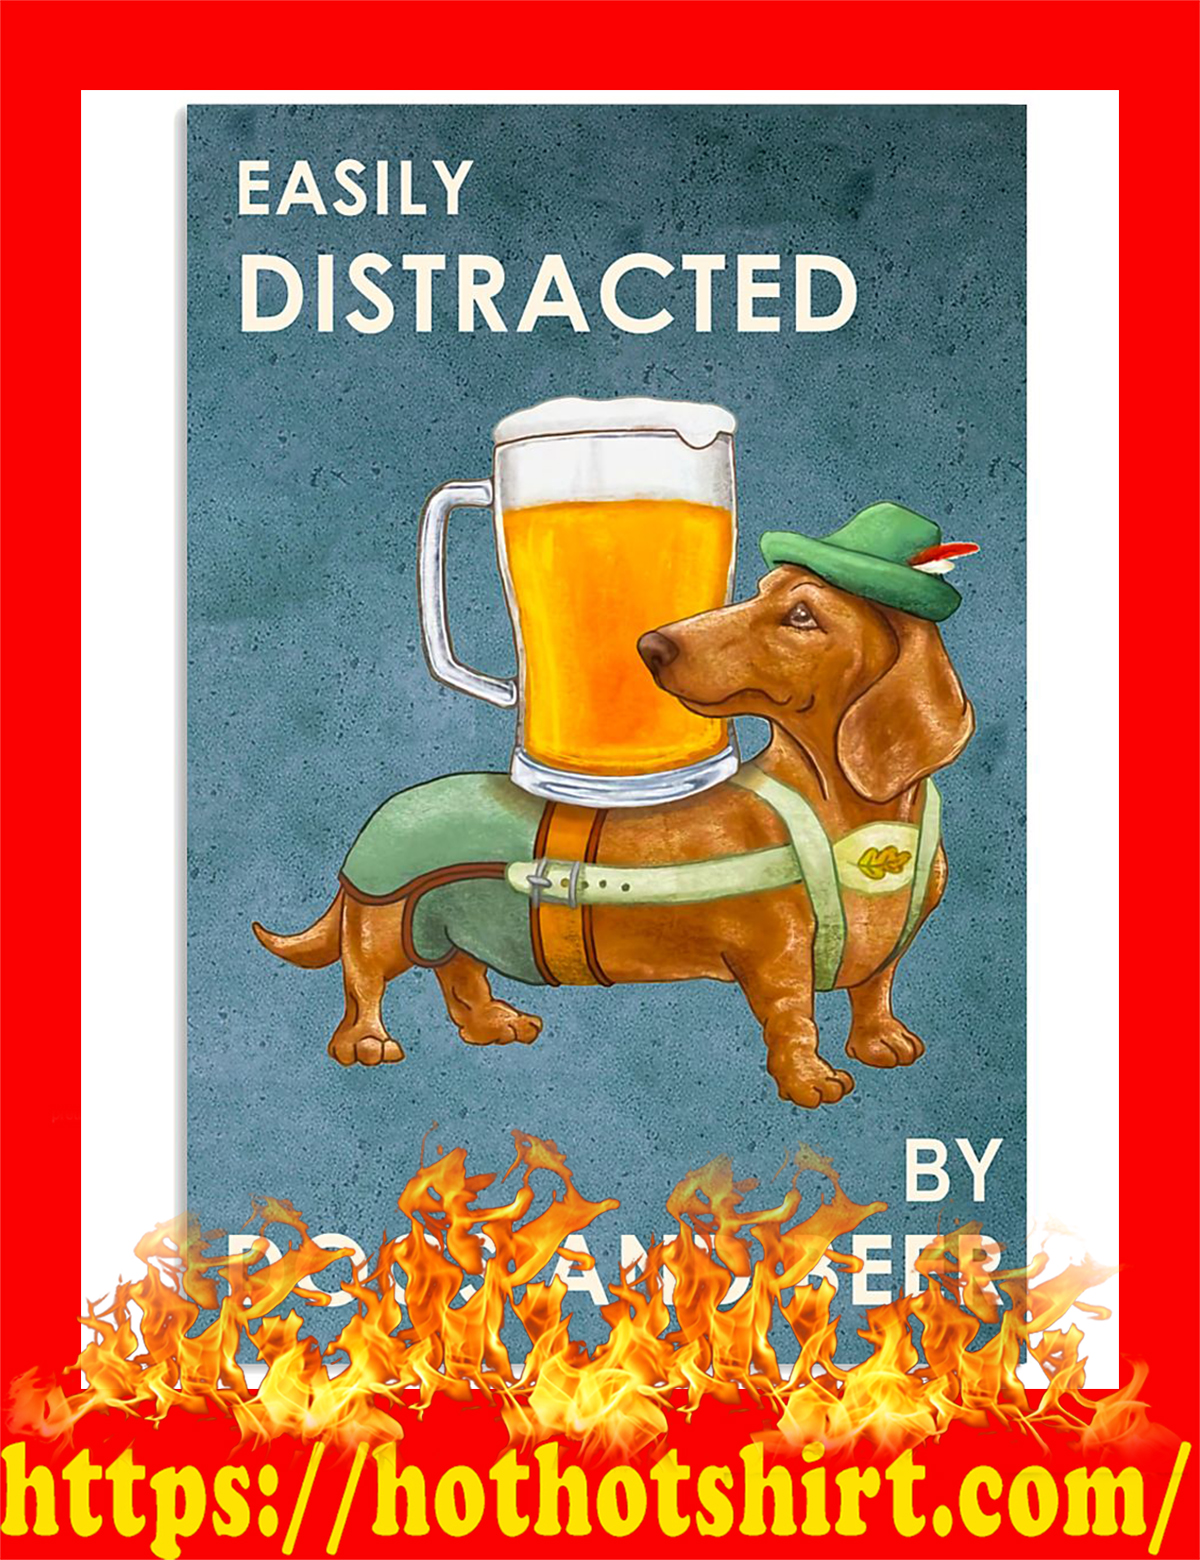 Dachshund Easily distracted by dogs and beer poster - pic 1